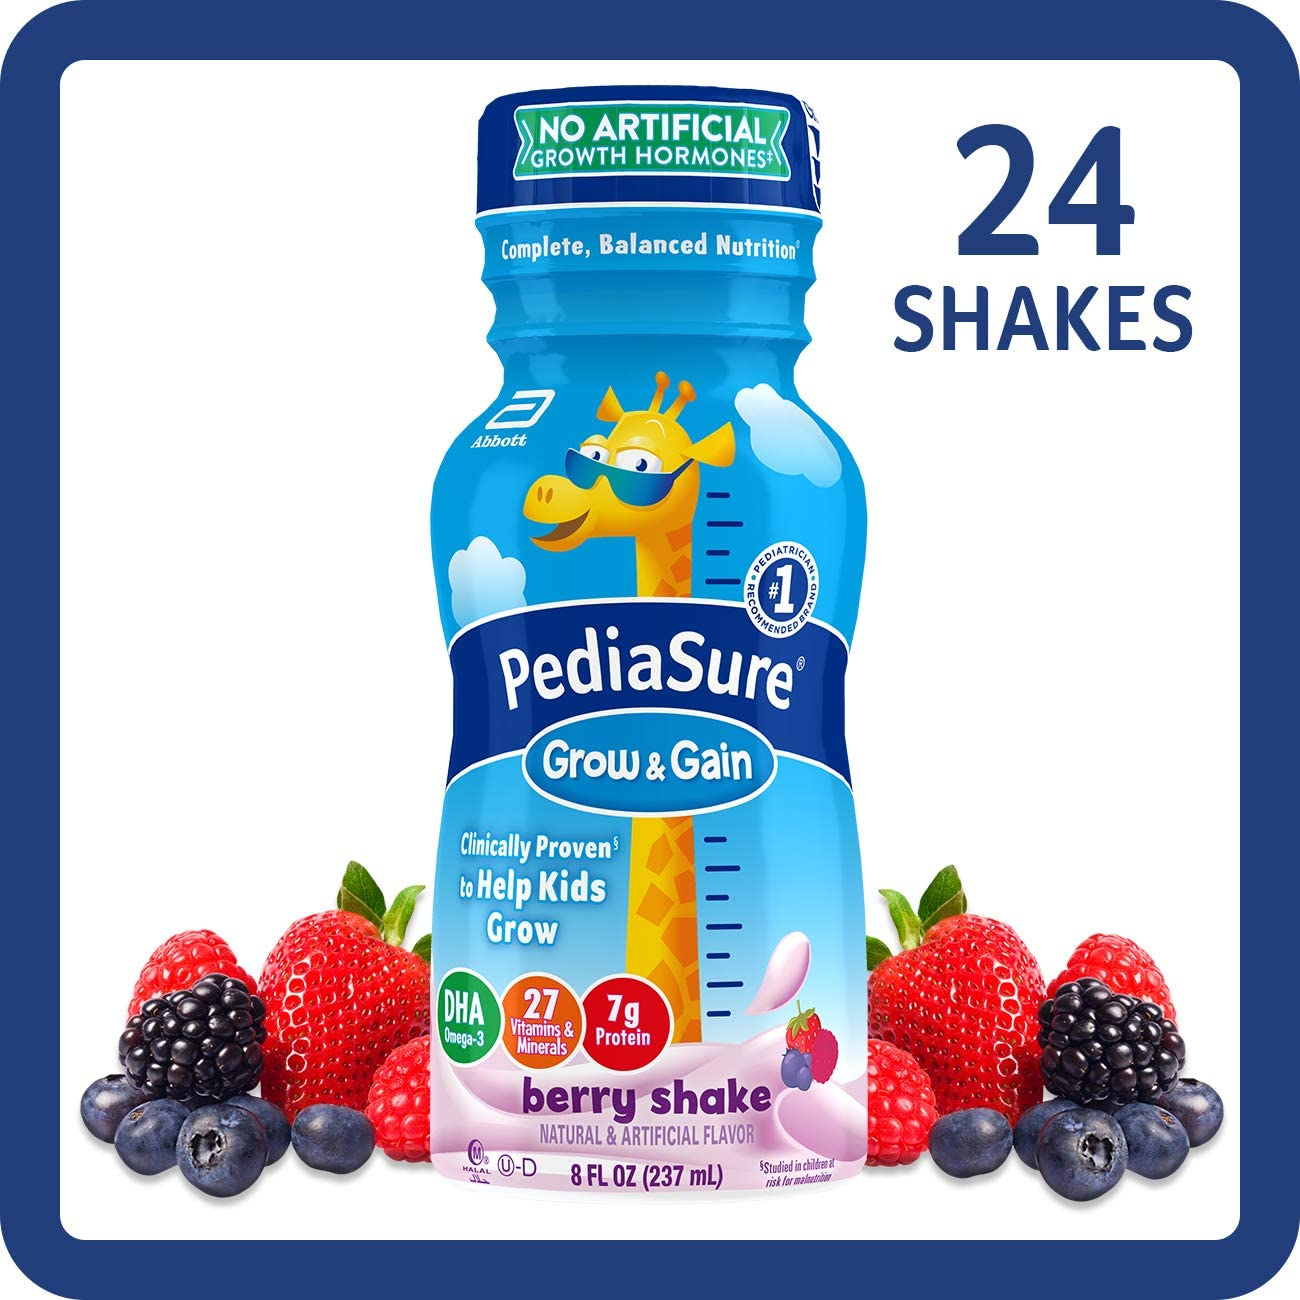 PediaSure Grow & Gain Kids' Nutritional Shake, with Protein, DHA, and Vitamins & Minerals, Berry, 8 fl oz, 24-Count